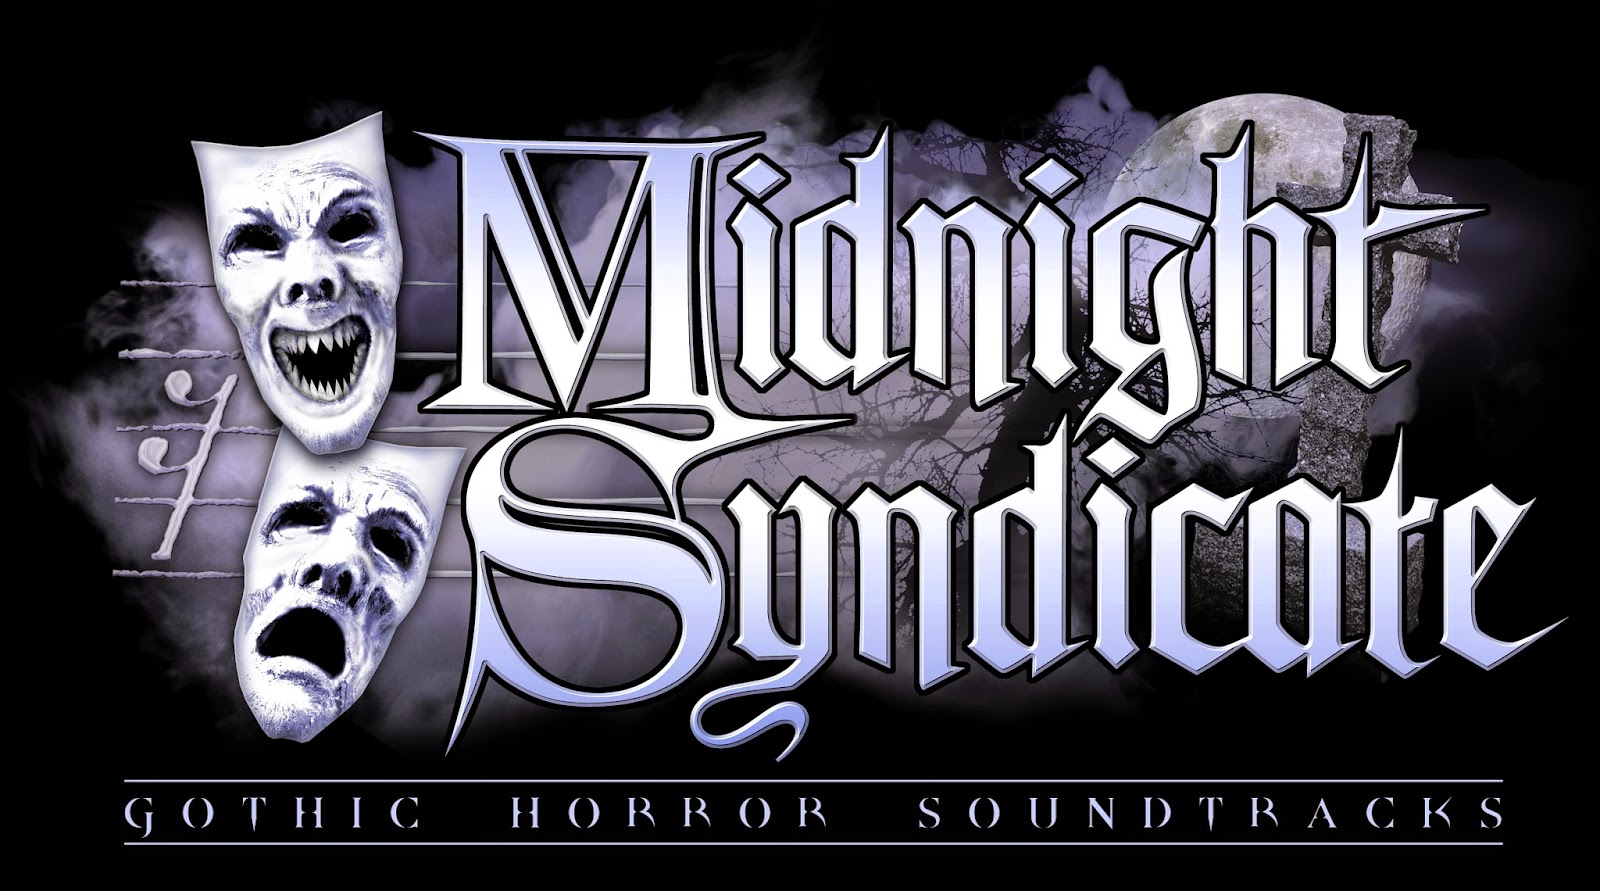 http://www.midnightsyndicate.com/index.shtml